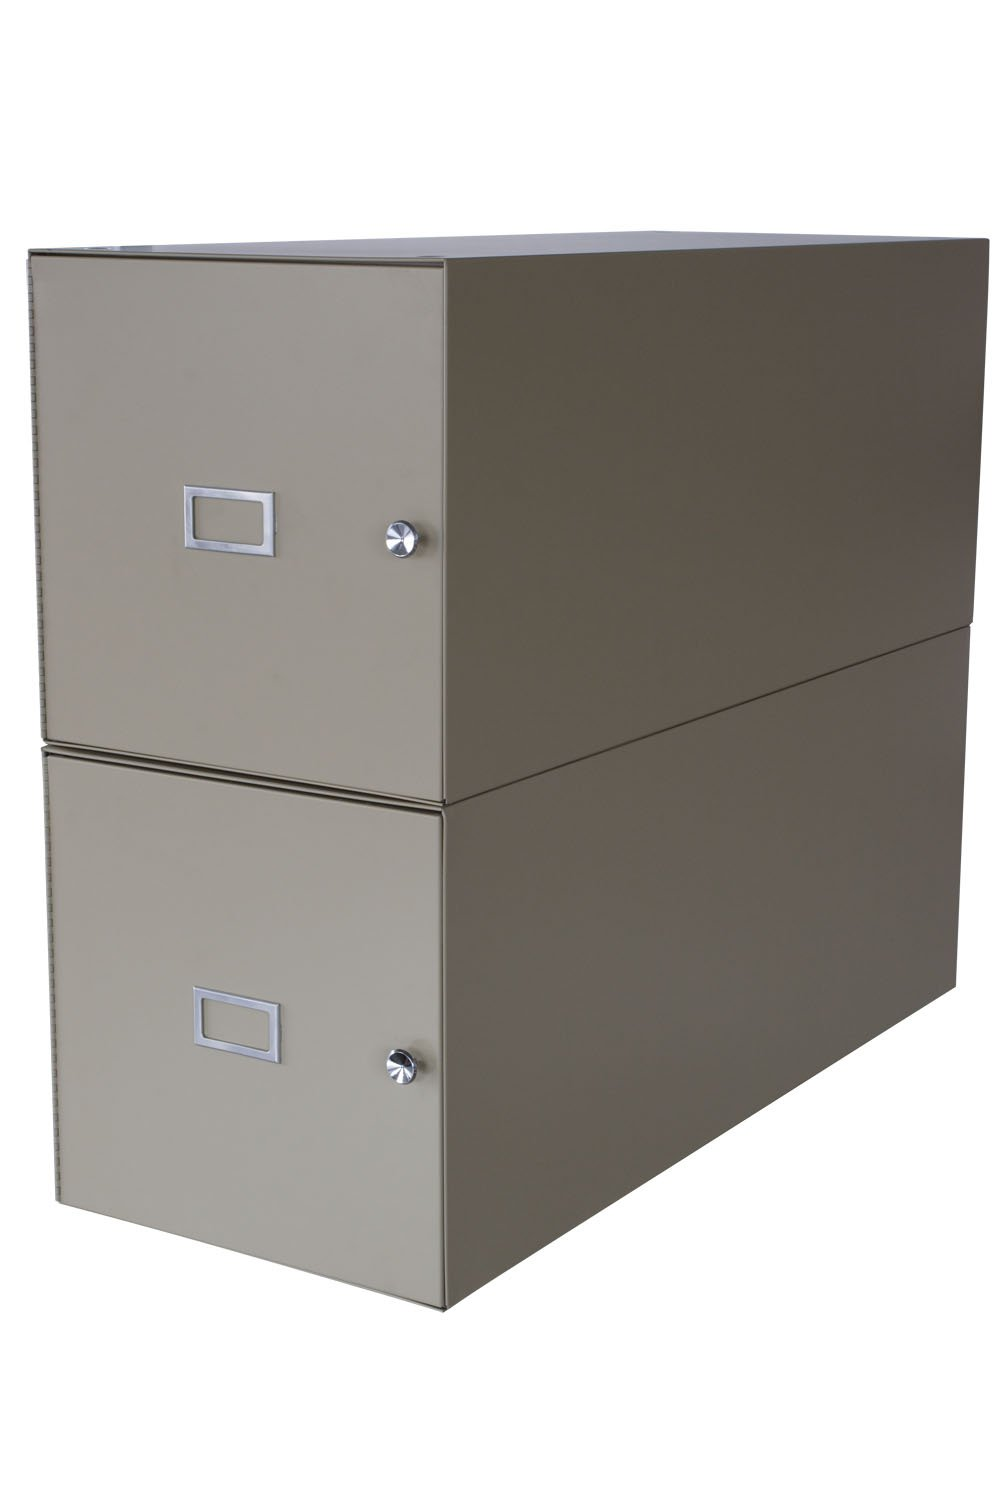 Amazon adir stackable steel 16 roll file for rolls up to 37 amazon adir stackable steel 16 roll file for rolls up to 37 inches long horizontal storage cabinet kitchen dining malvernweather Gallery